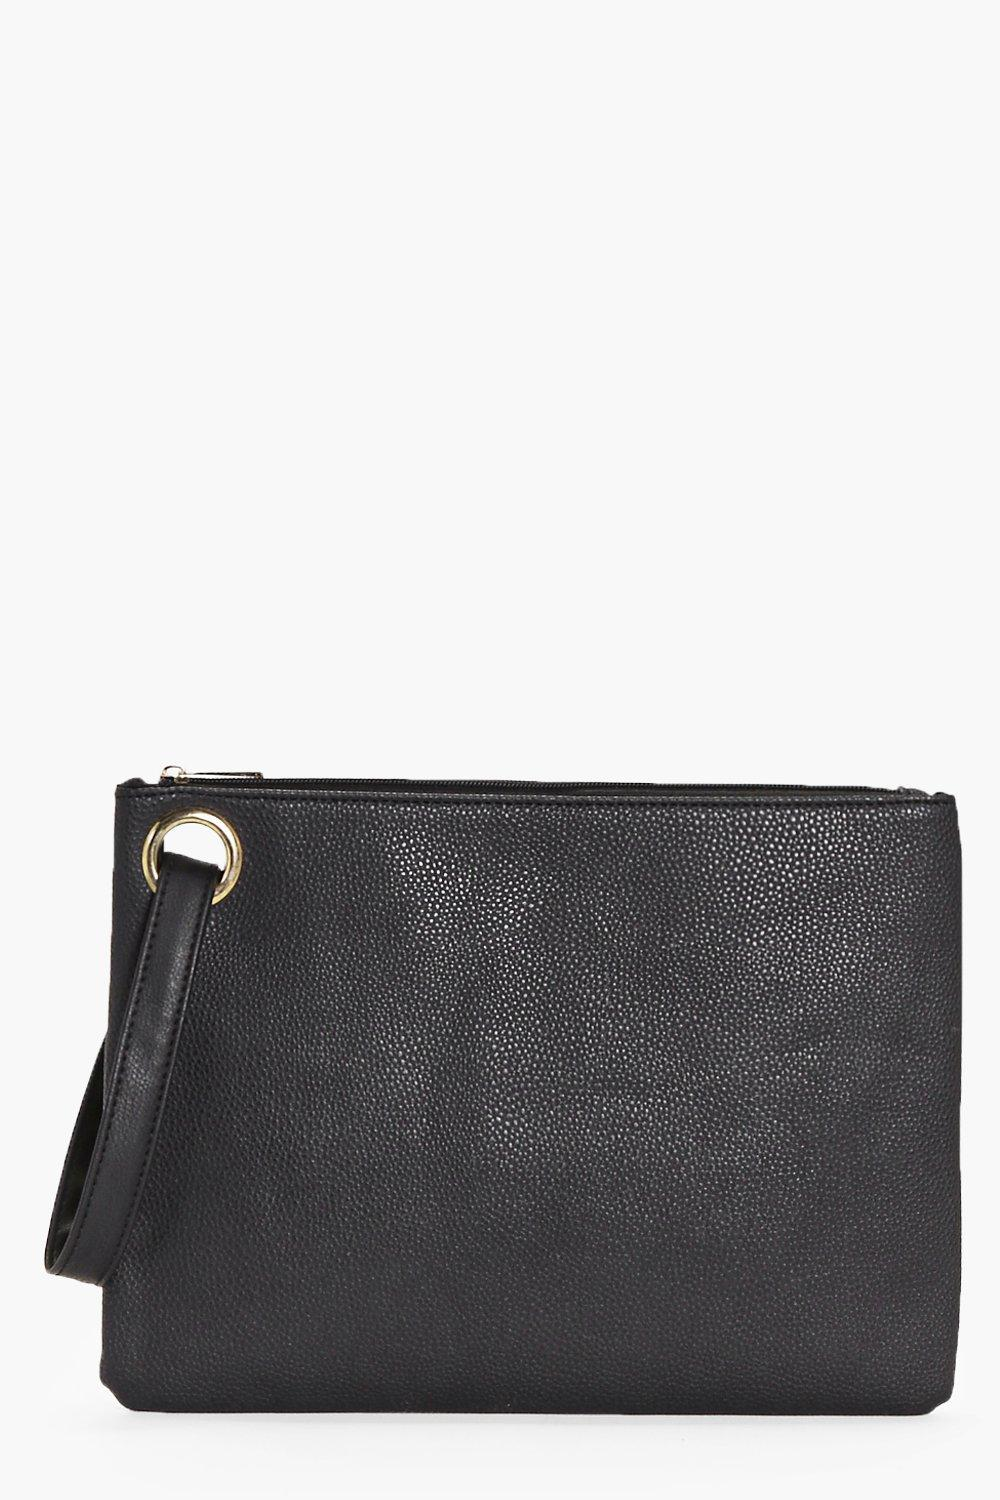 Lillie Loop and Hand Strap Detail Clutch Bag